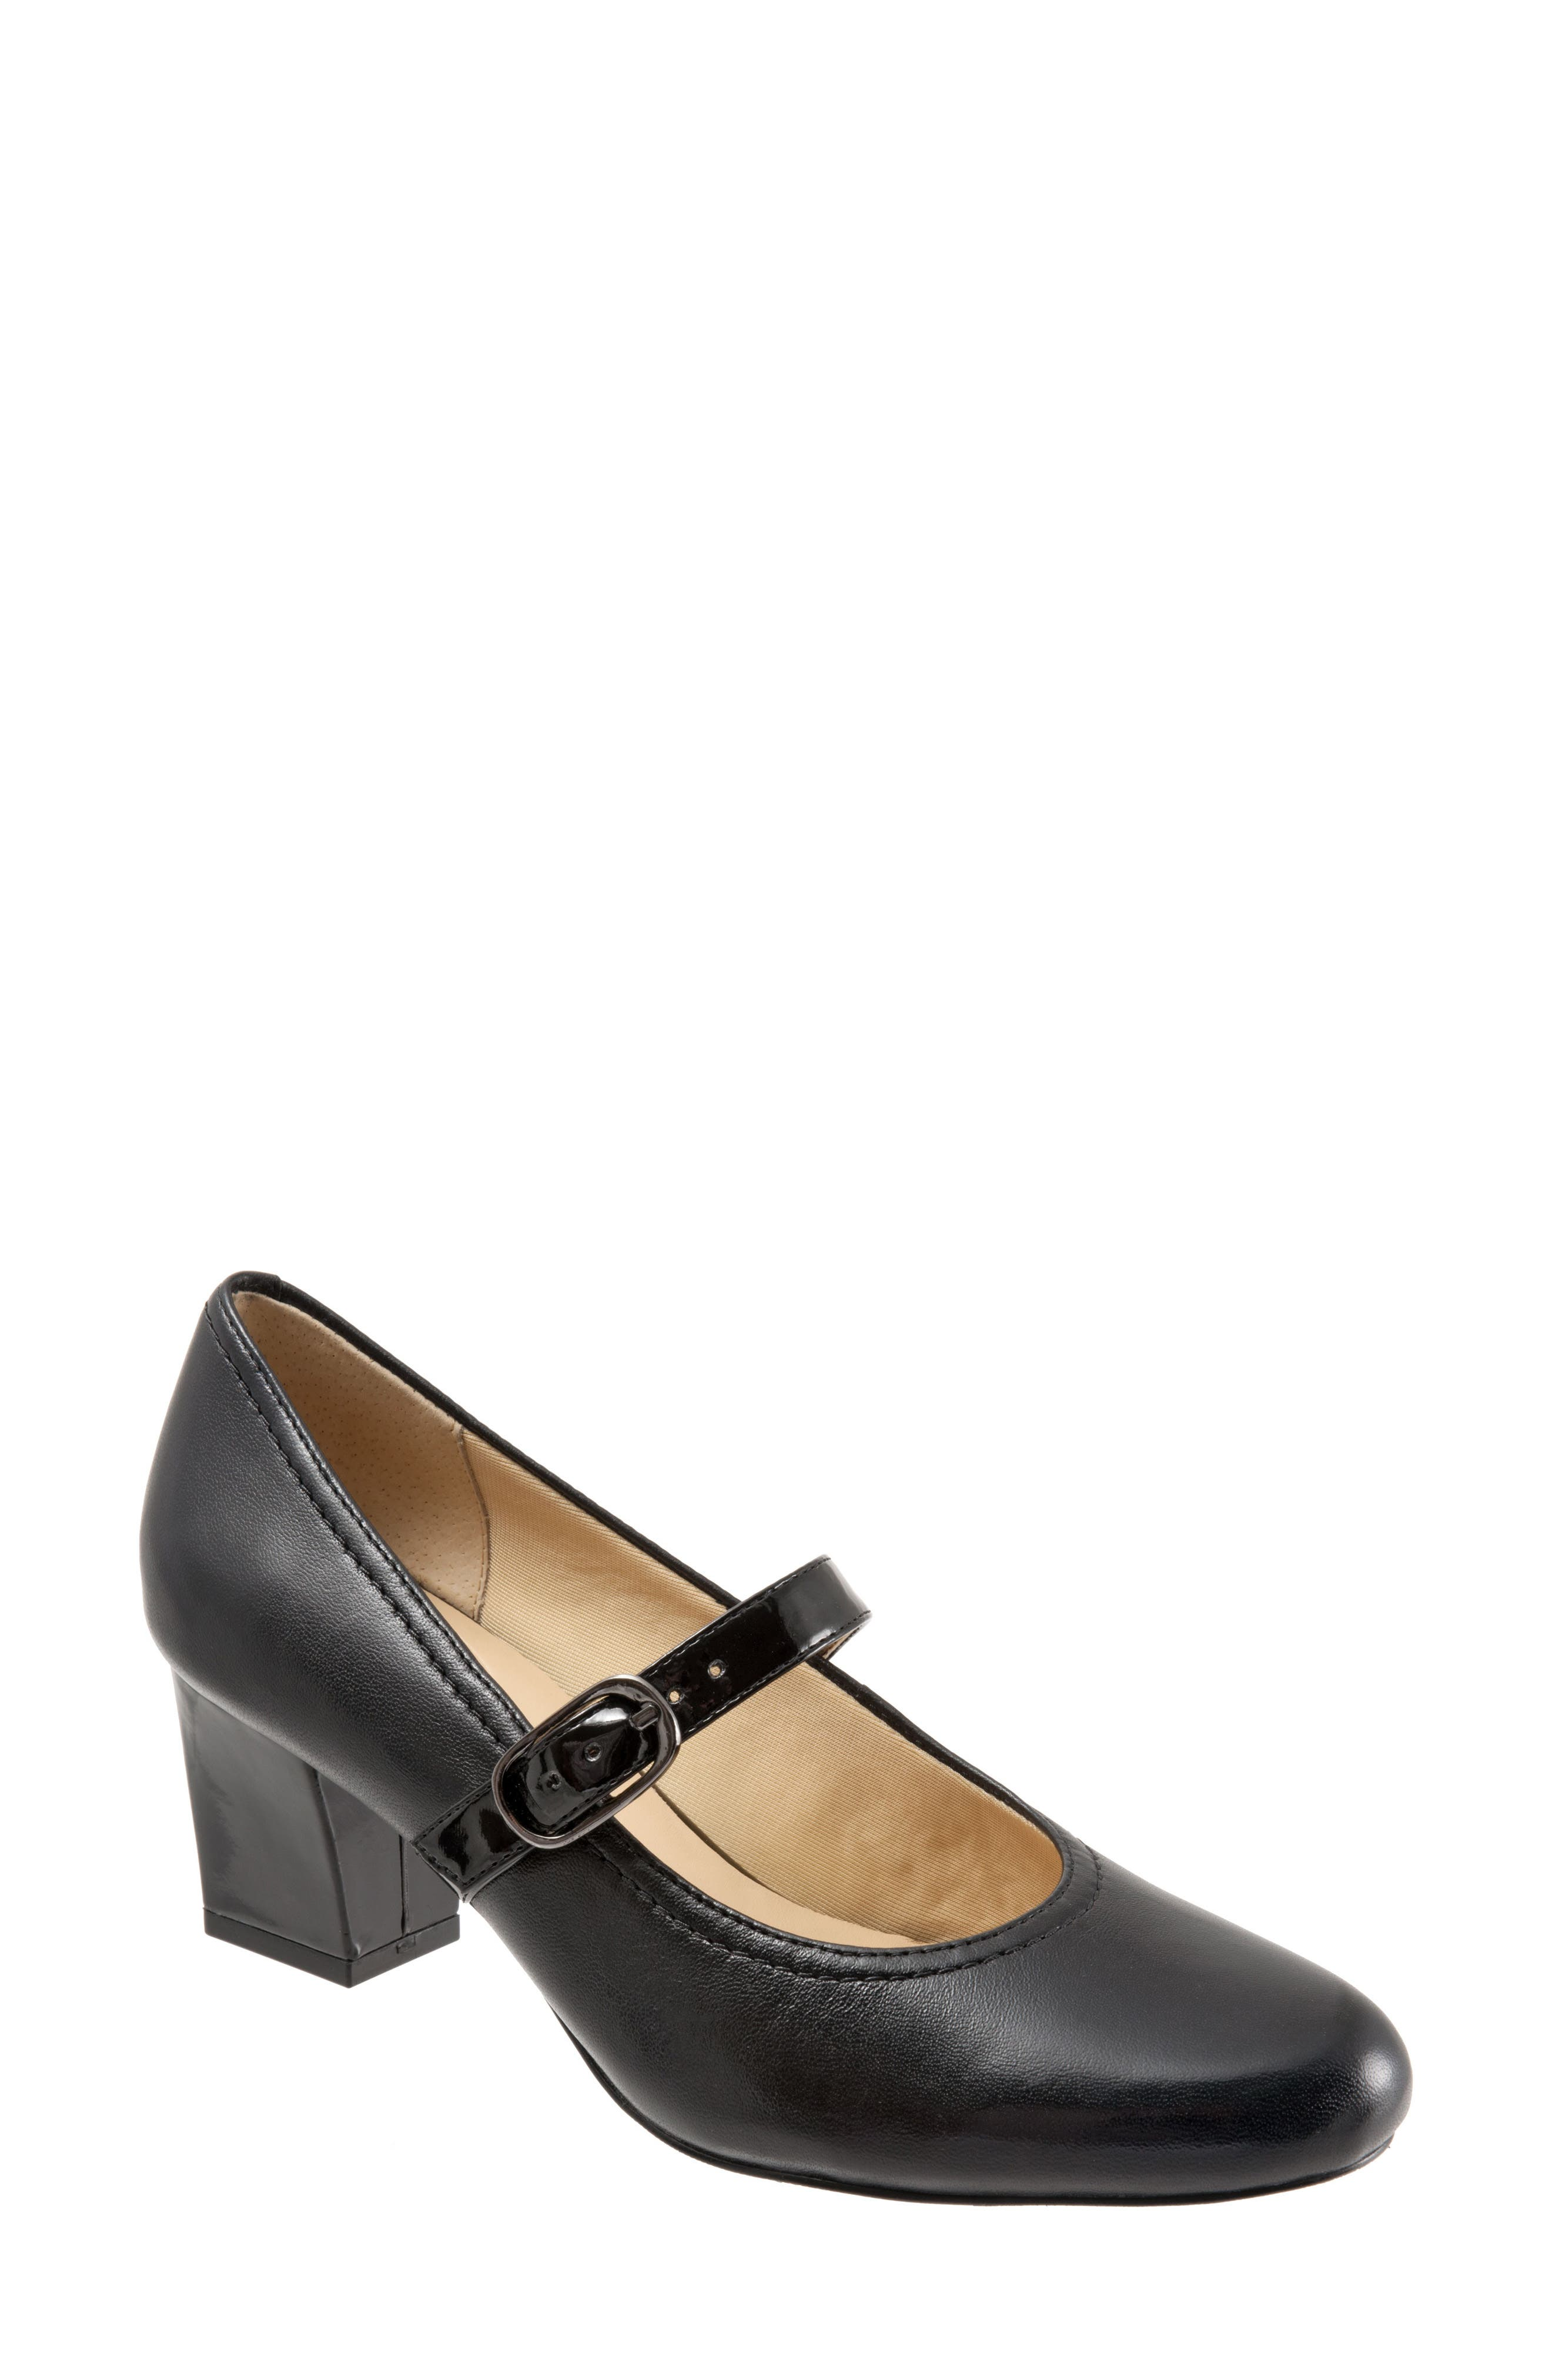 'Candice' Mary Jane Pump,                             Alternate thumbnail 5, color,                             BLACK LEATHER